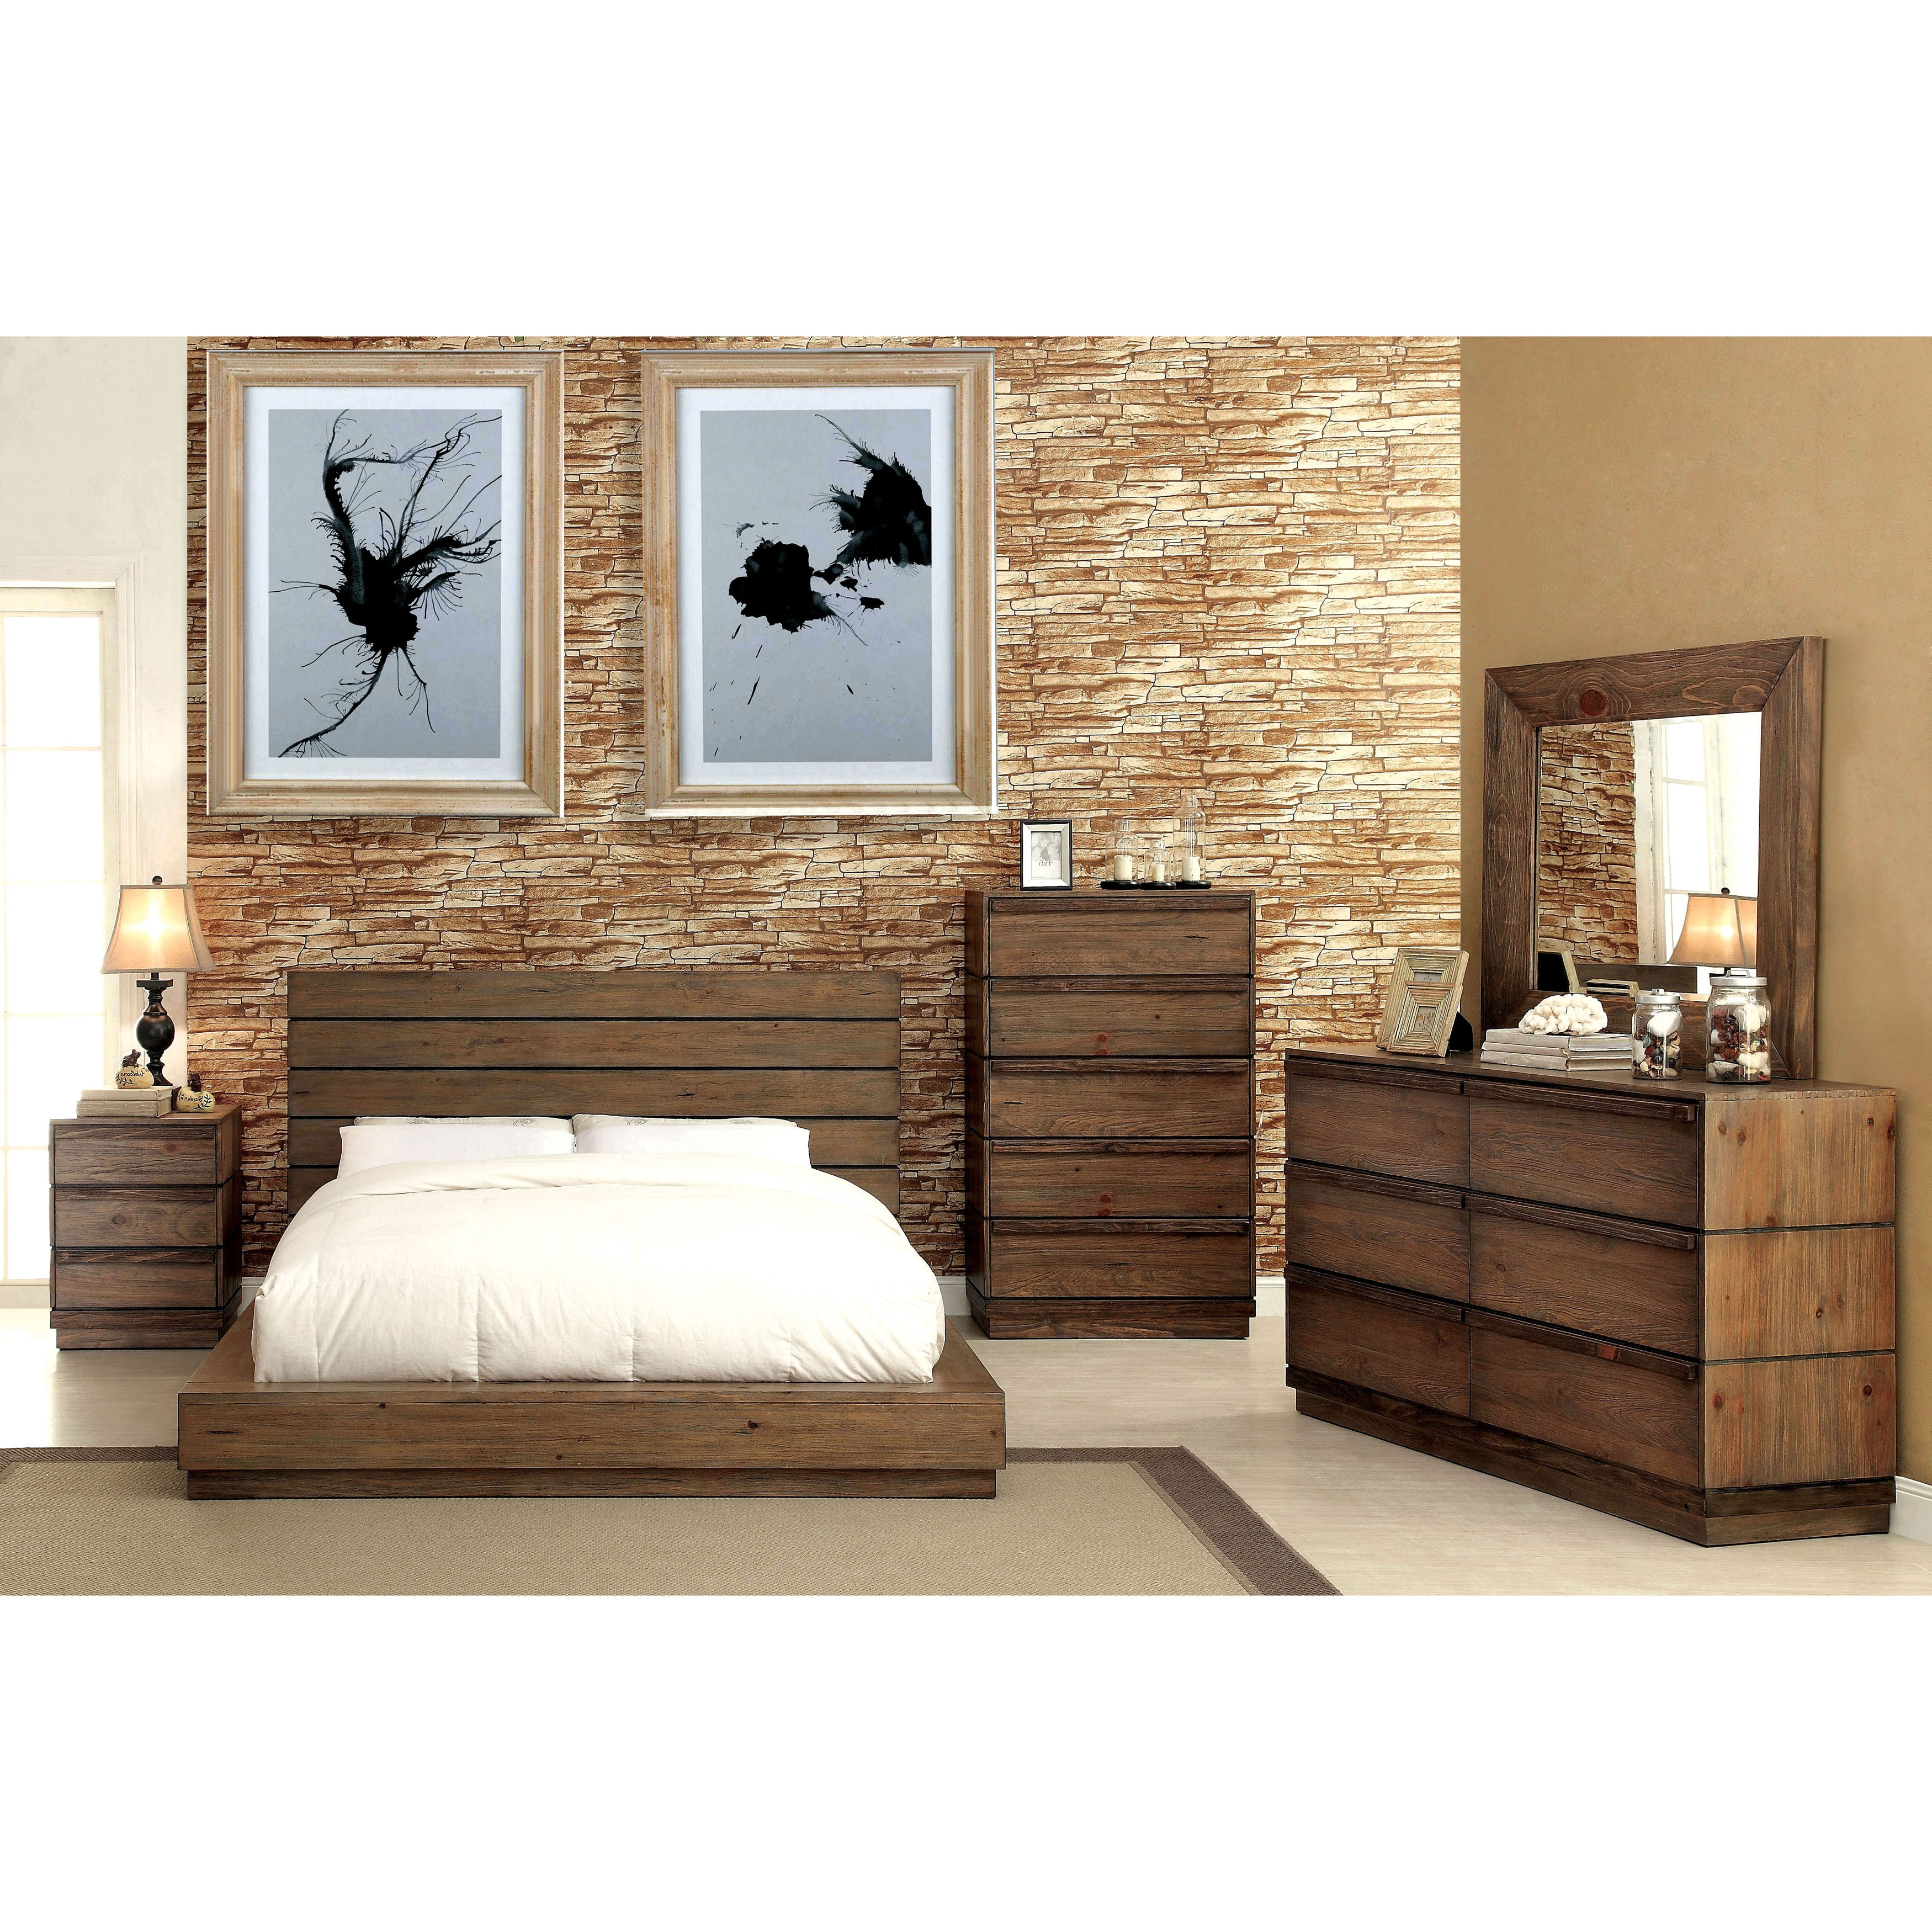 Delicieux Shop Pine Canopy Nolana Rustic 4 Piece Natural Tone Low Profile Bedroom Set    On Sale   Free Shipping Today   Overstock.com   21906801